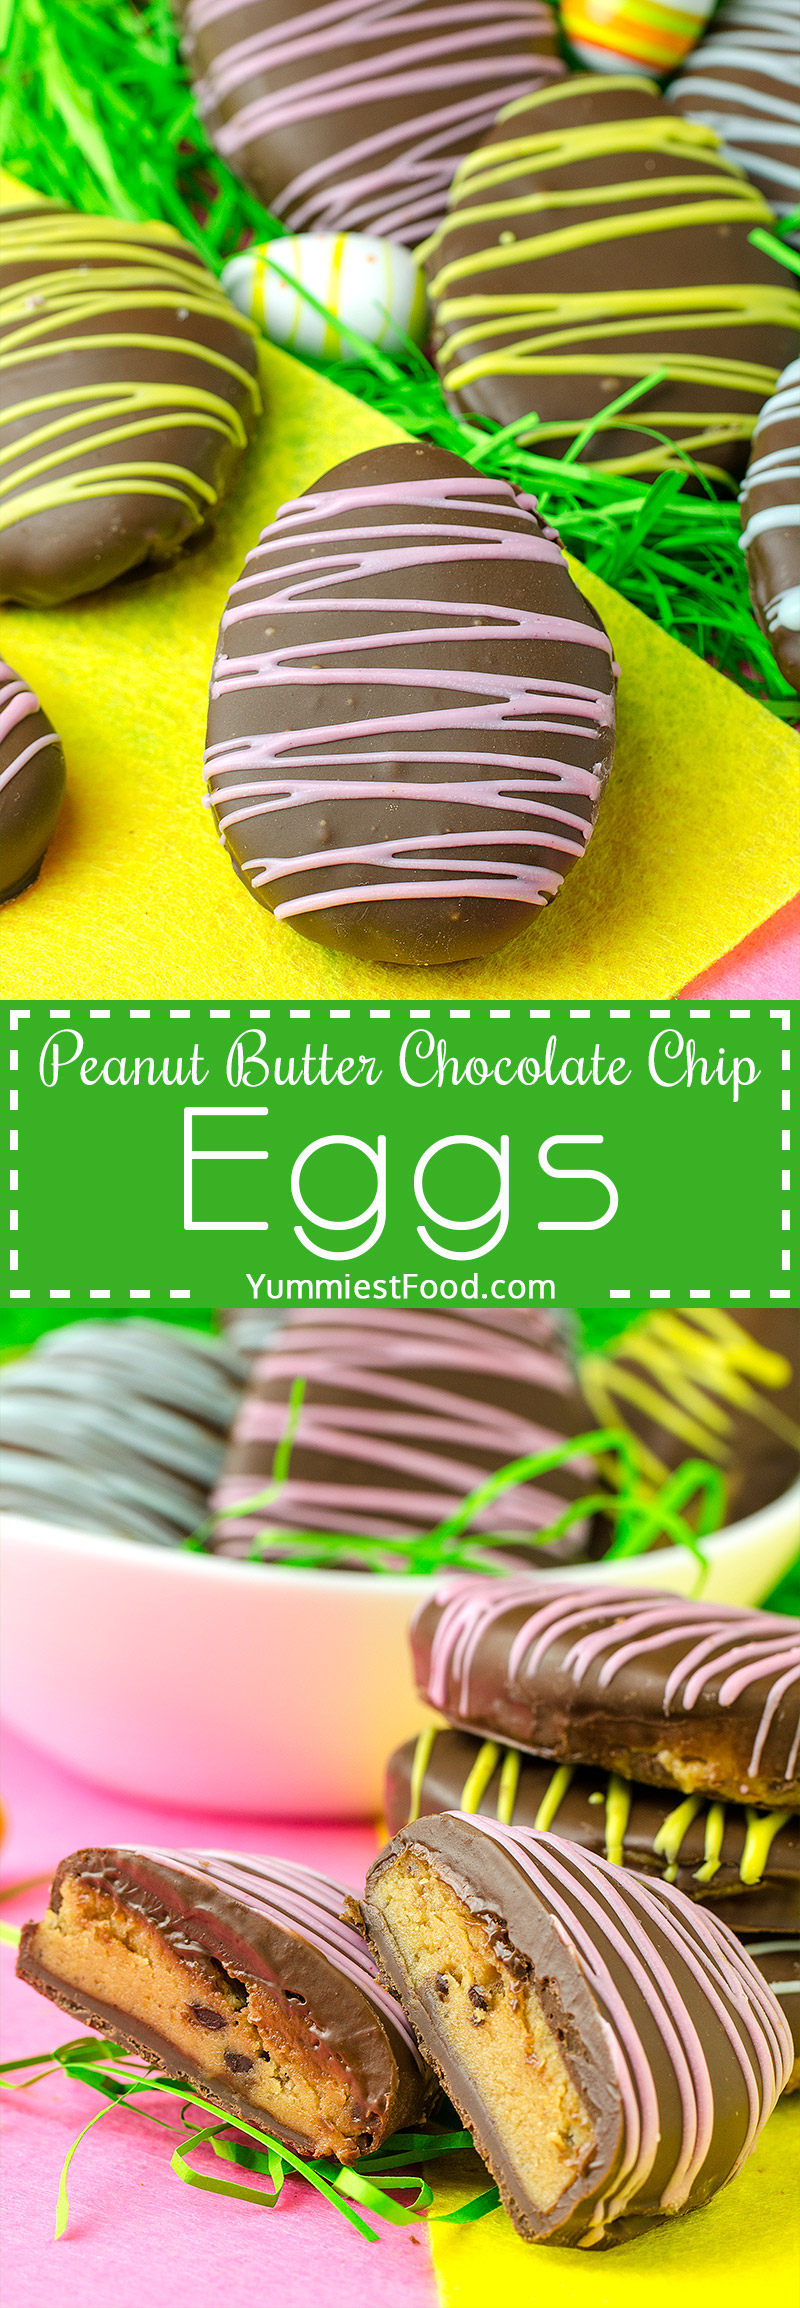 These cute, delicious and easy Peanut Butter Chocolate Chip Eggs are the perfect treat to indulge in this Easter